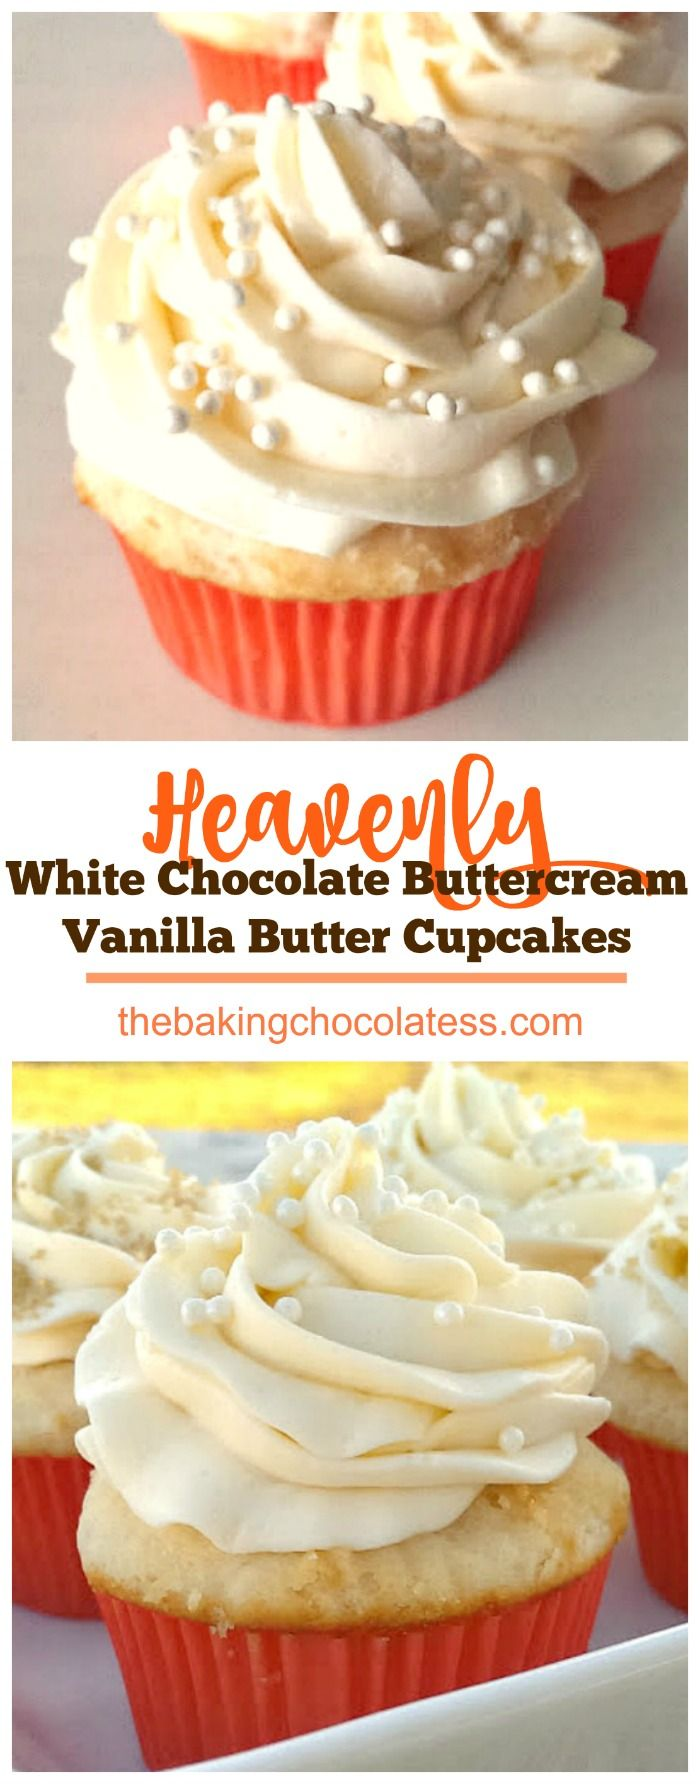 Be prepared to be dazzled!  Rich, Vanilla Butter Cake meets decadent White Chocolate Buttercream Frosting!  Heavenly! via @https://www.pinterest.com/BaknChocolaTess/